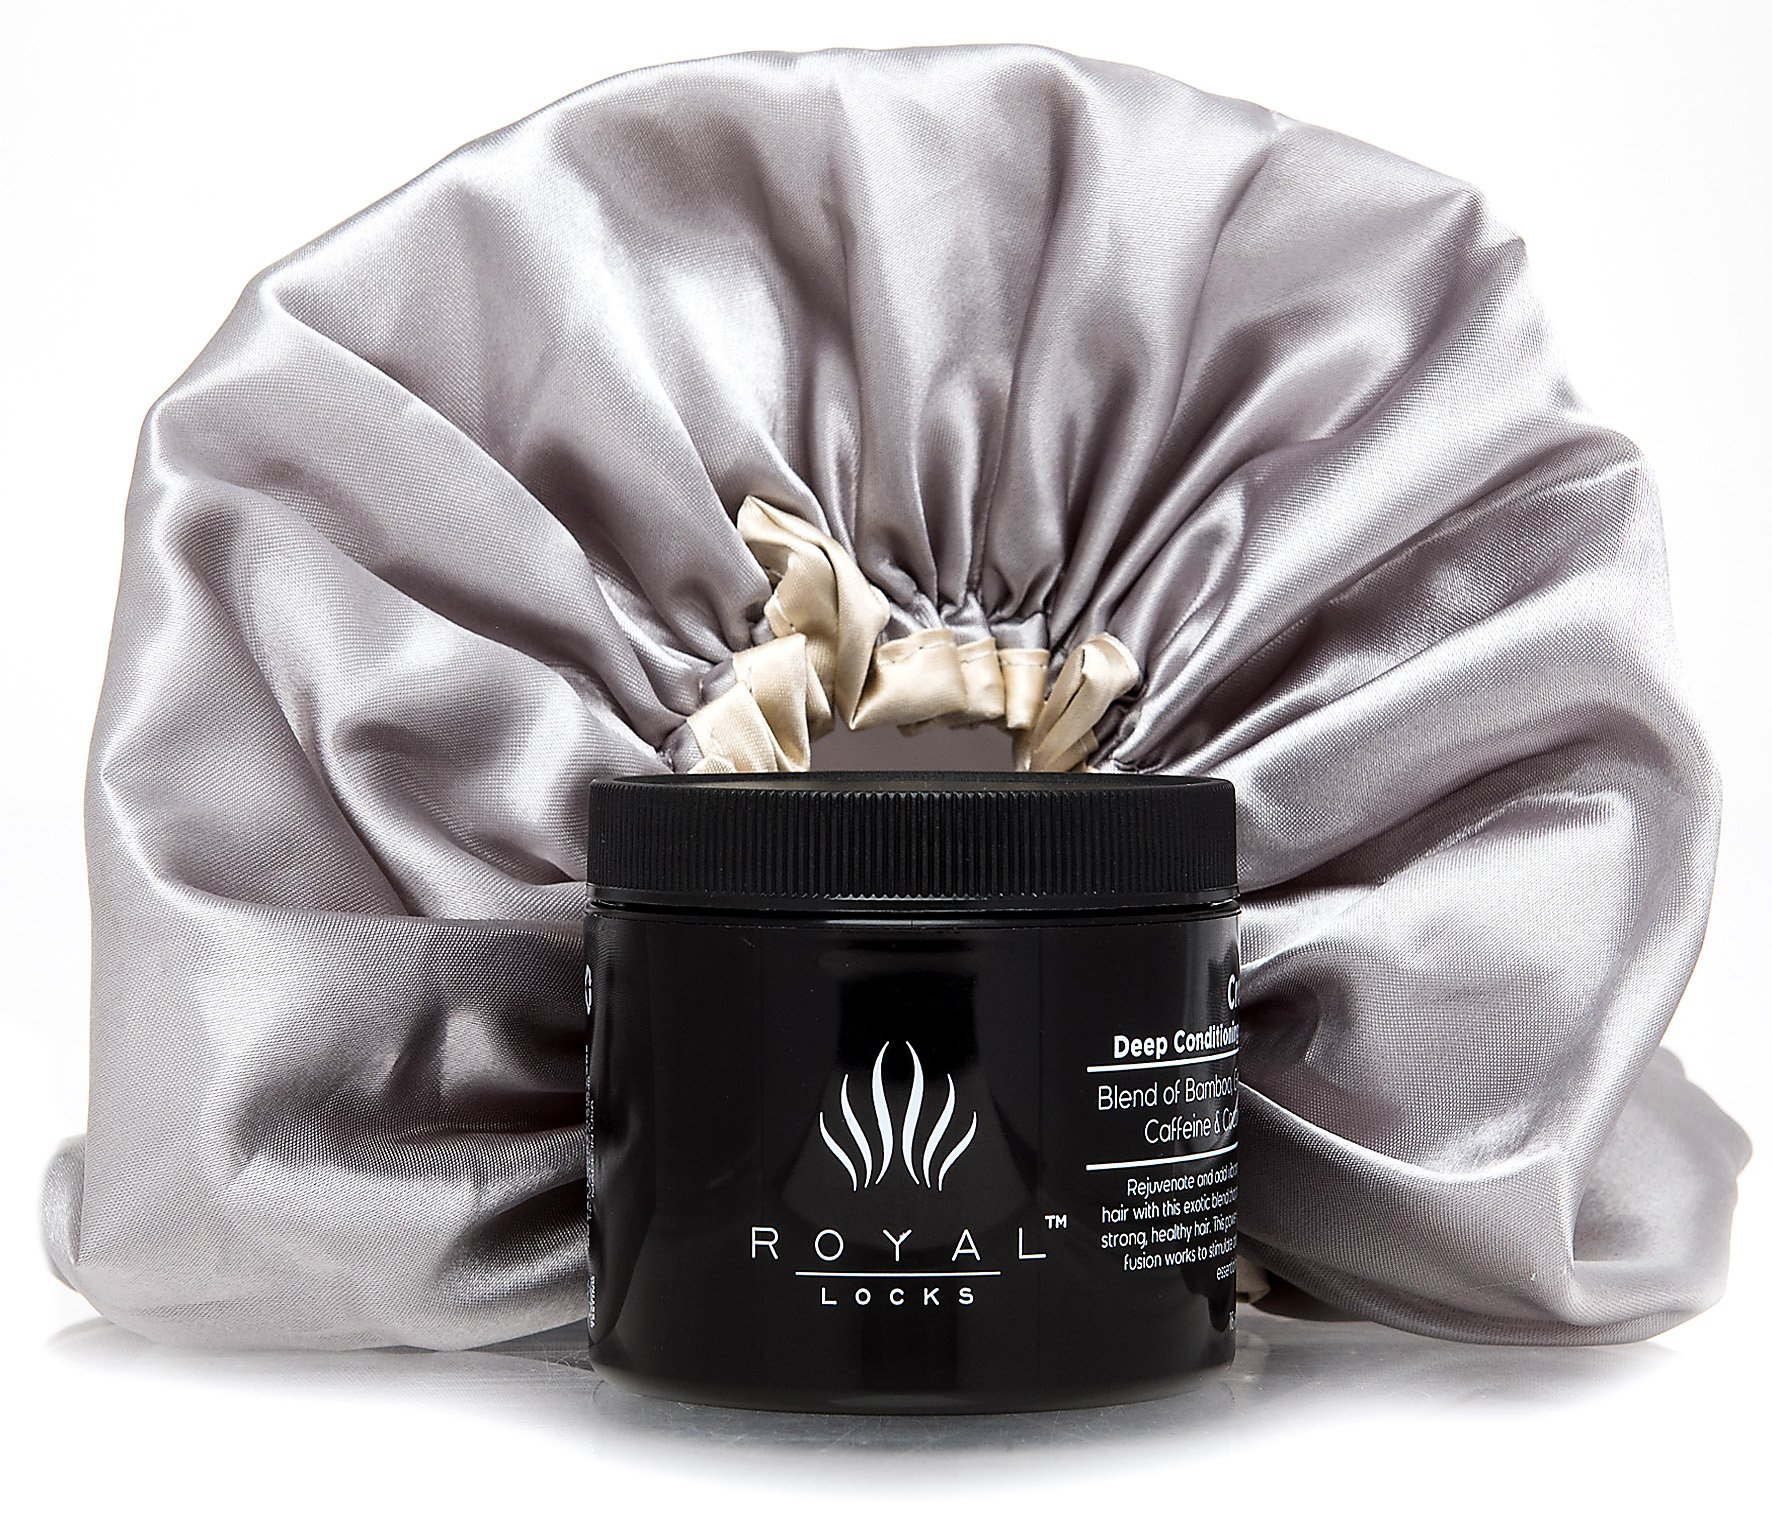 Deep Conditioning Hair Mask Treatment and Shower Cap by Royal Locks. Repairs Curly, Wavy, Dry, Damaged, and Colored Hair for Hydrating Moisture and Conditioner.